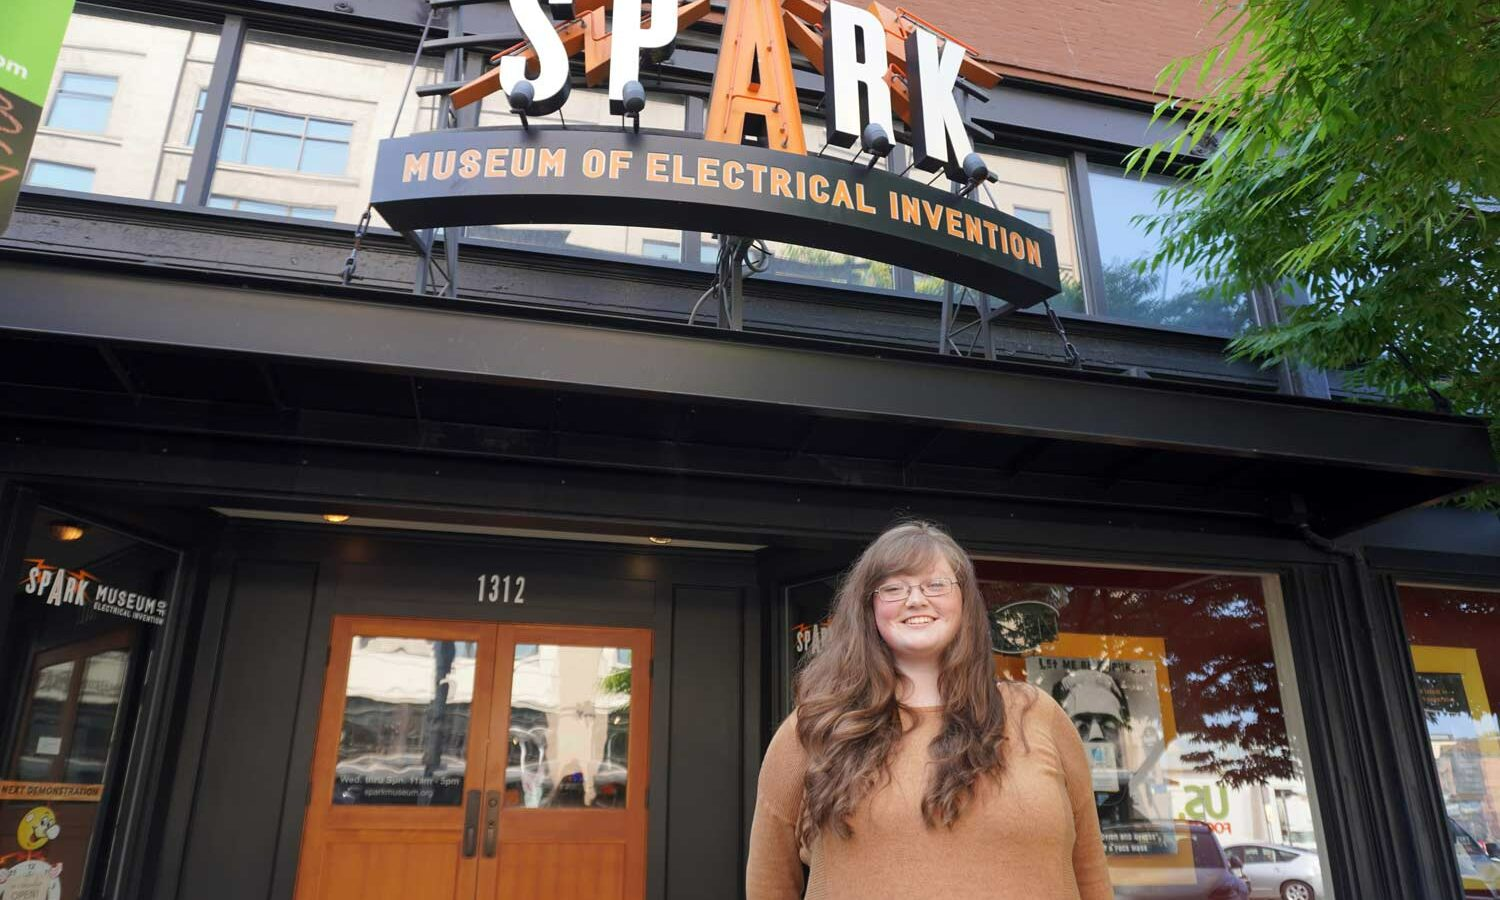 Abby Whatley, director of programs, stands in front of the spark museum.